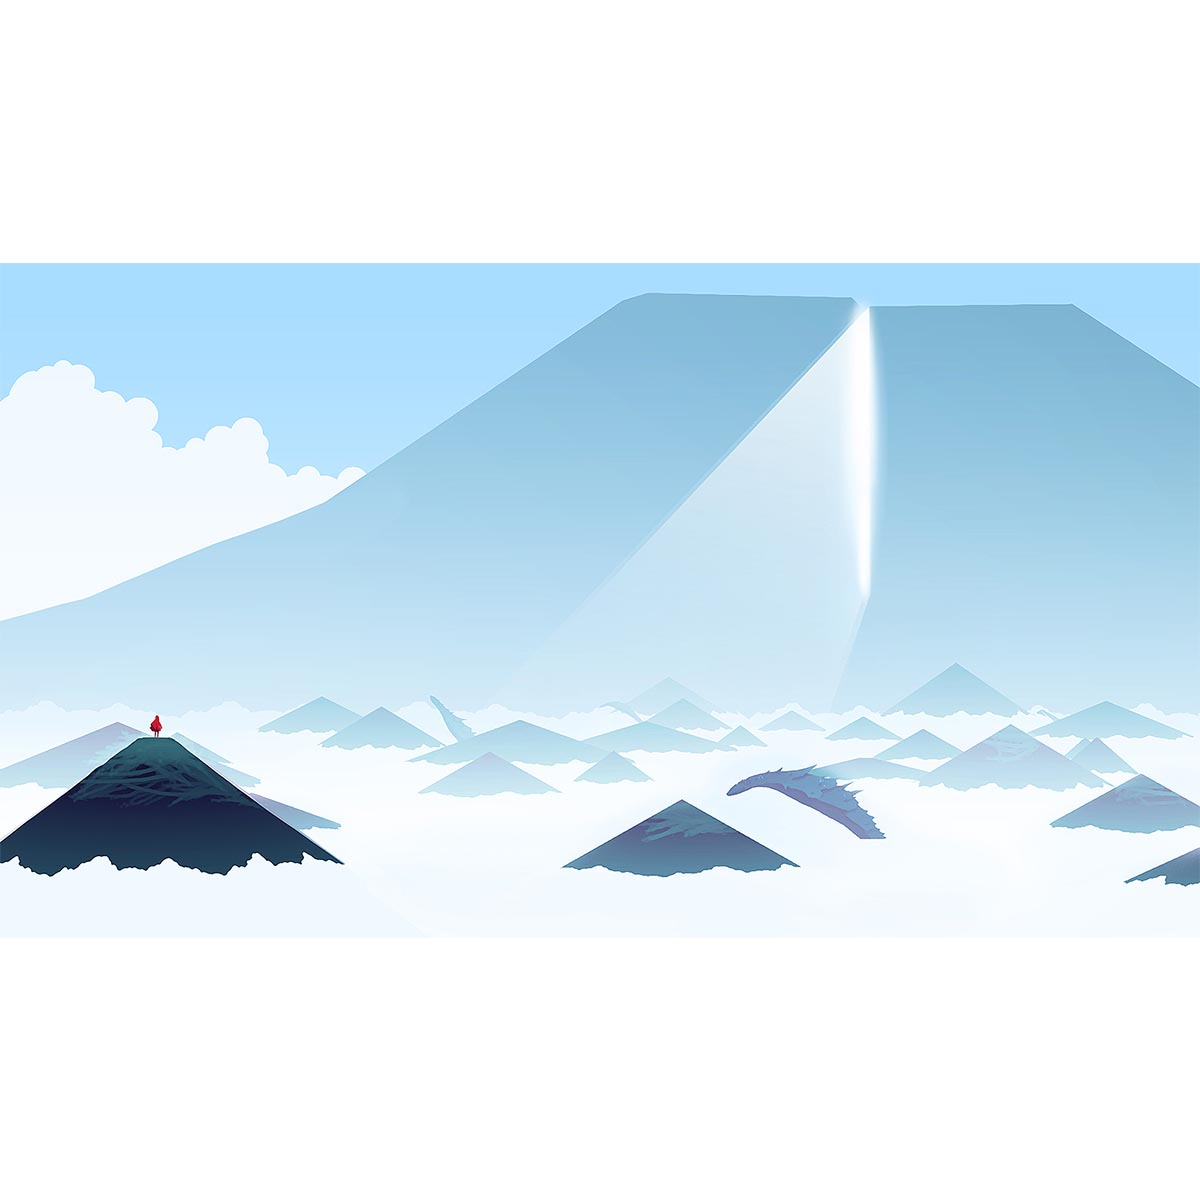 Mountain in the Sky, Journey, 2012 by Thatgamecompany - limited edition print